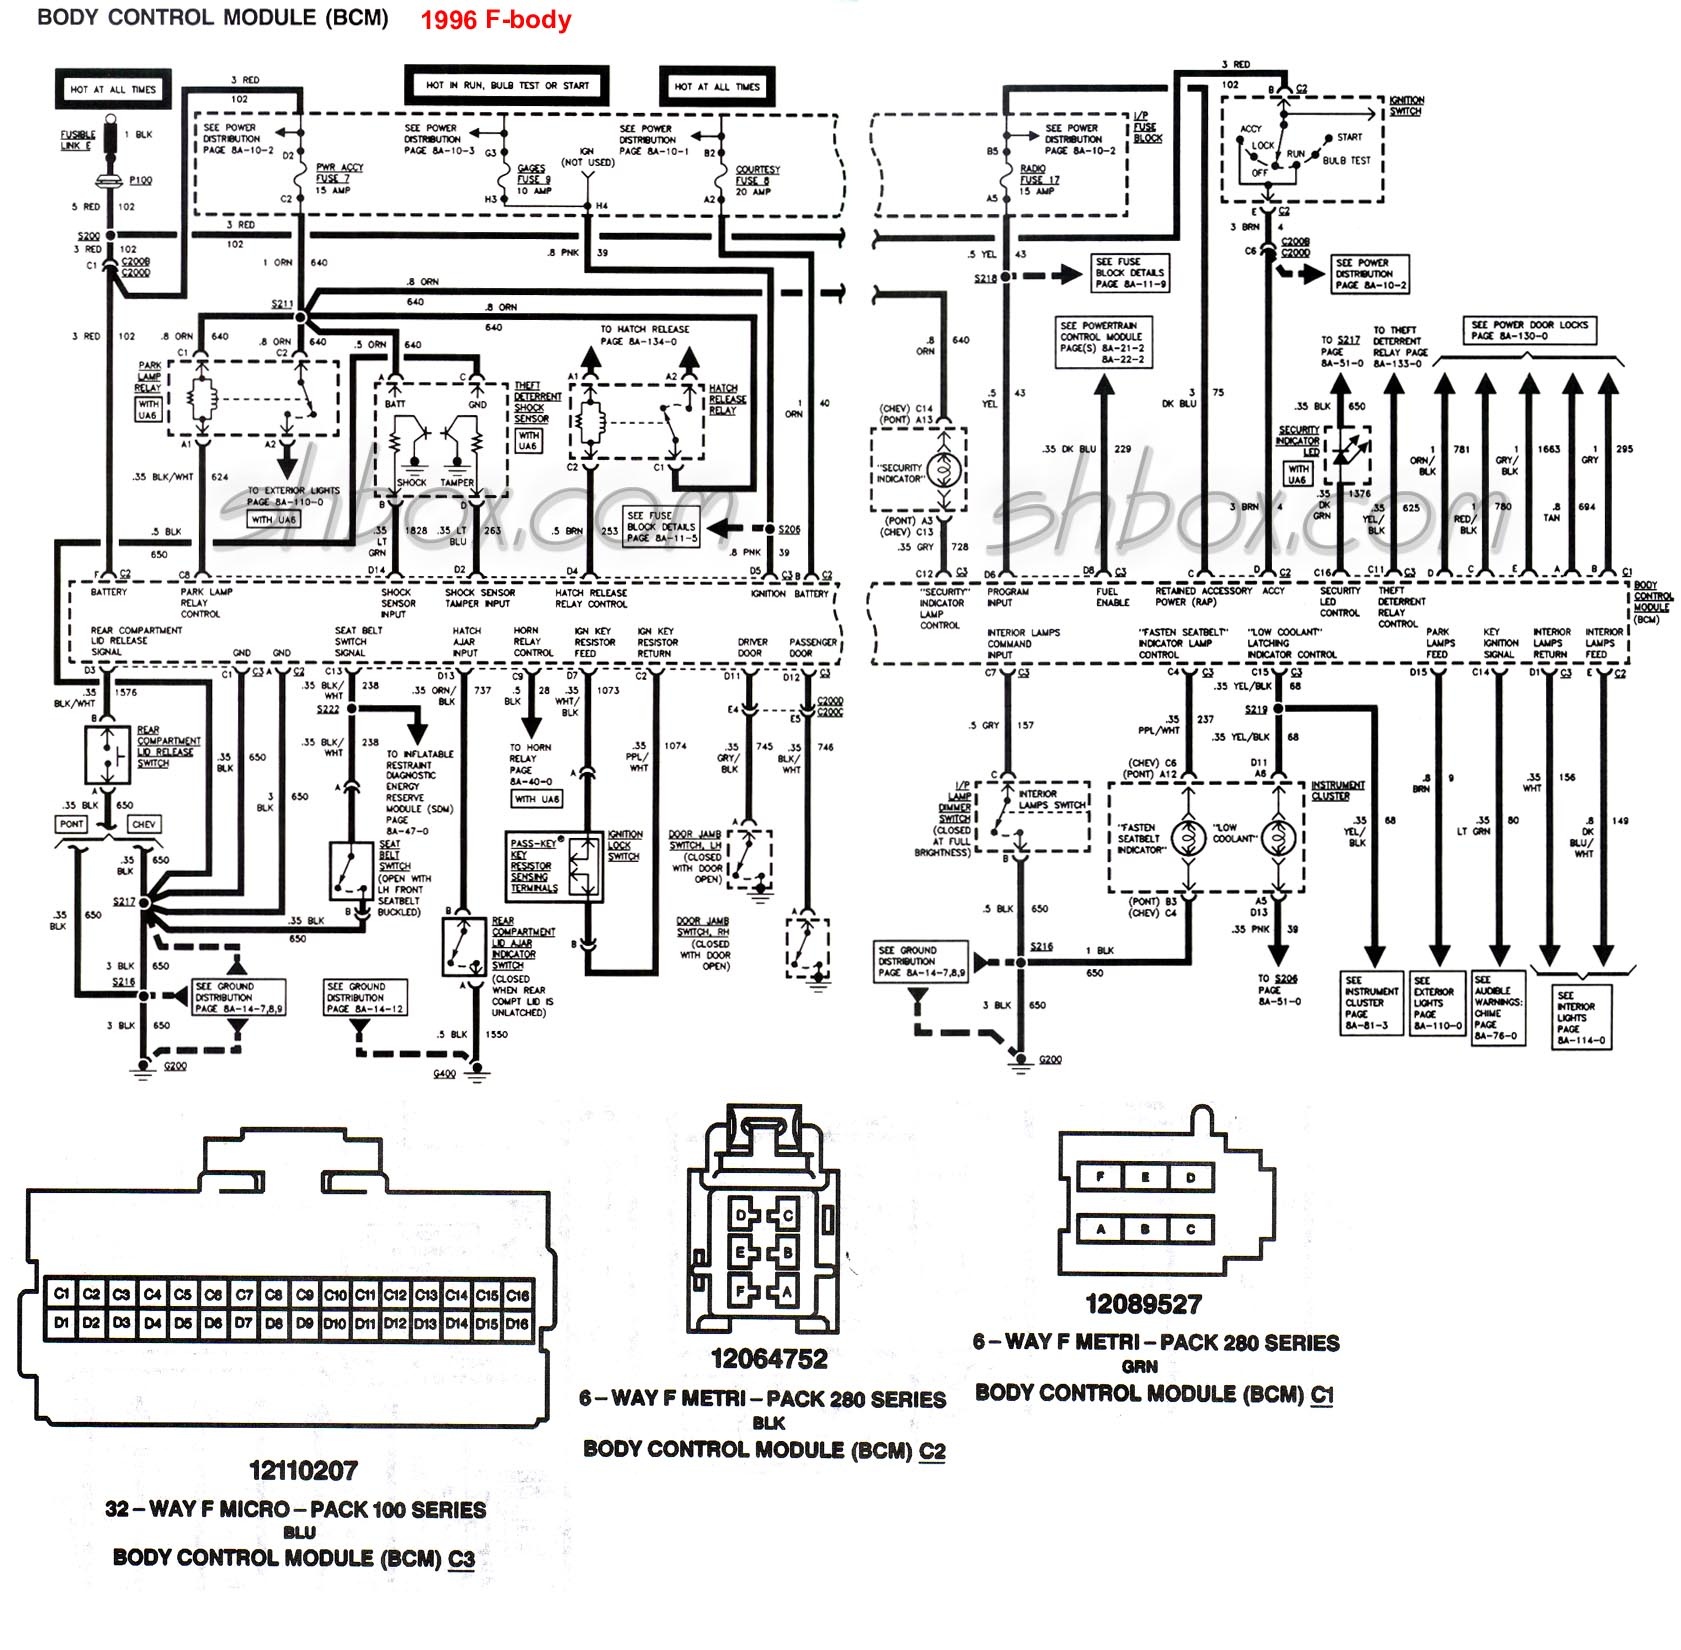 hight resolution of 96 k1500 fuse diagram wiring library 1994 chevy truck wiring diagram 96 chevy s10 4l60e wiring